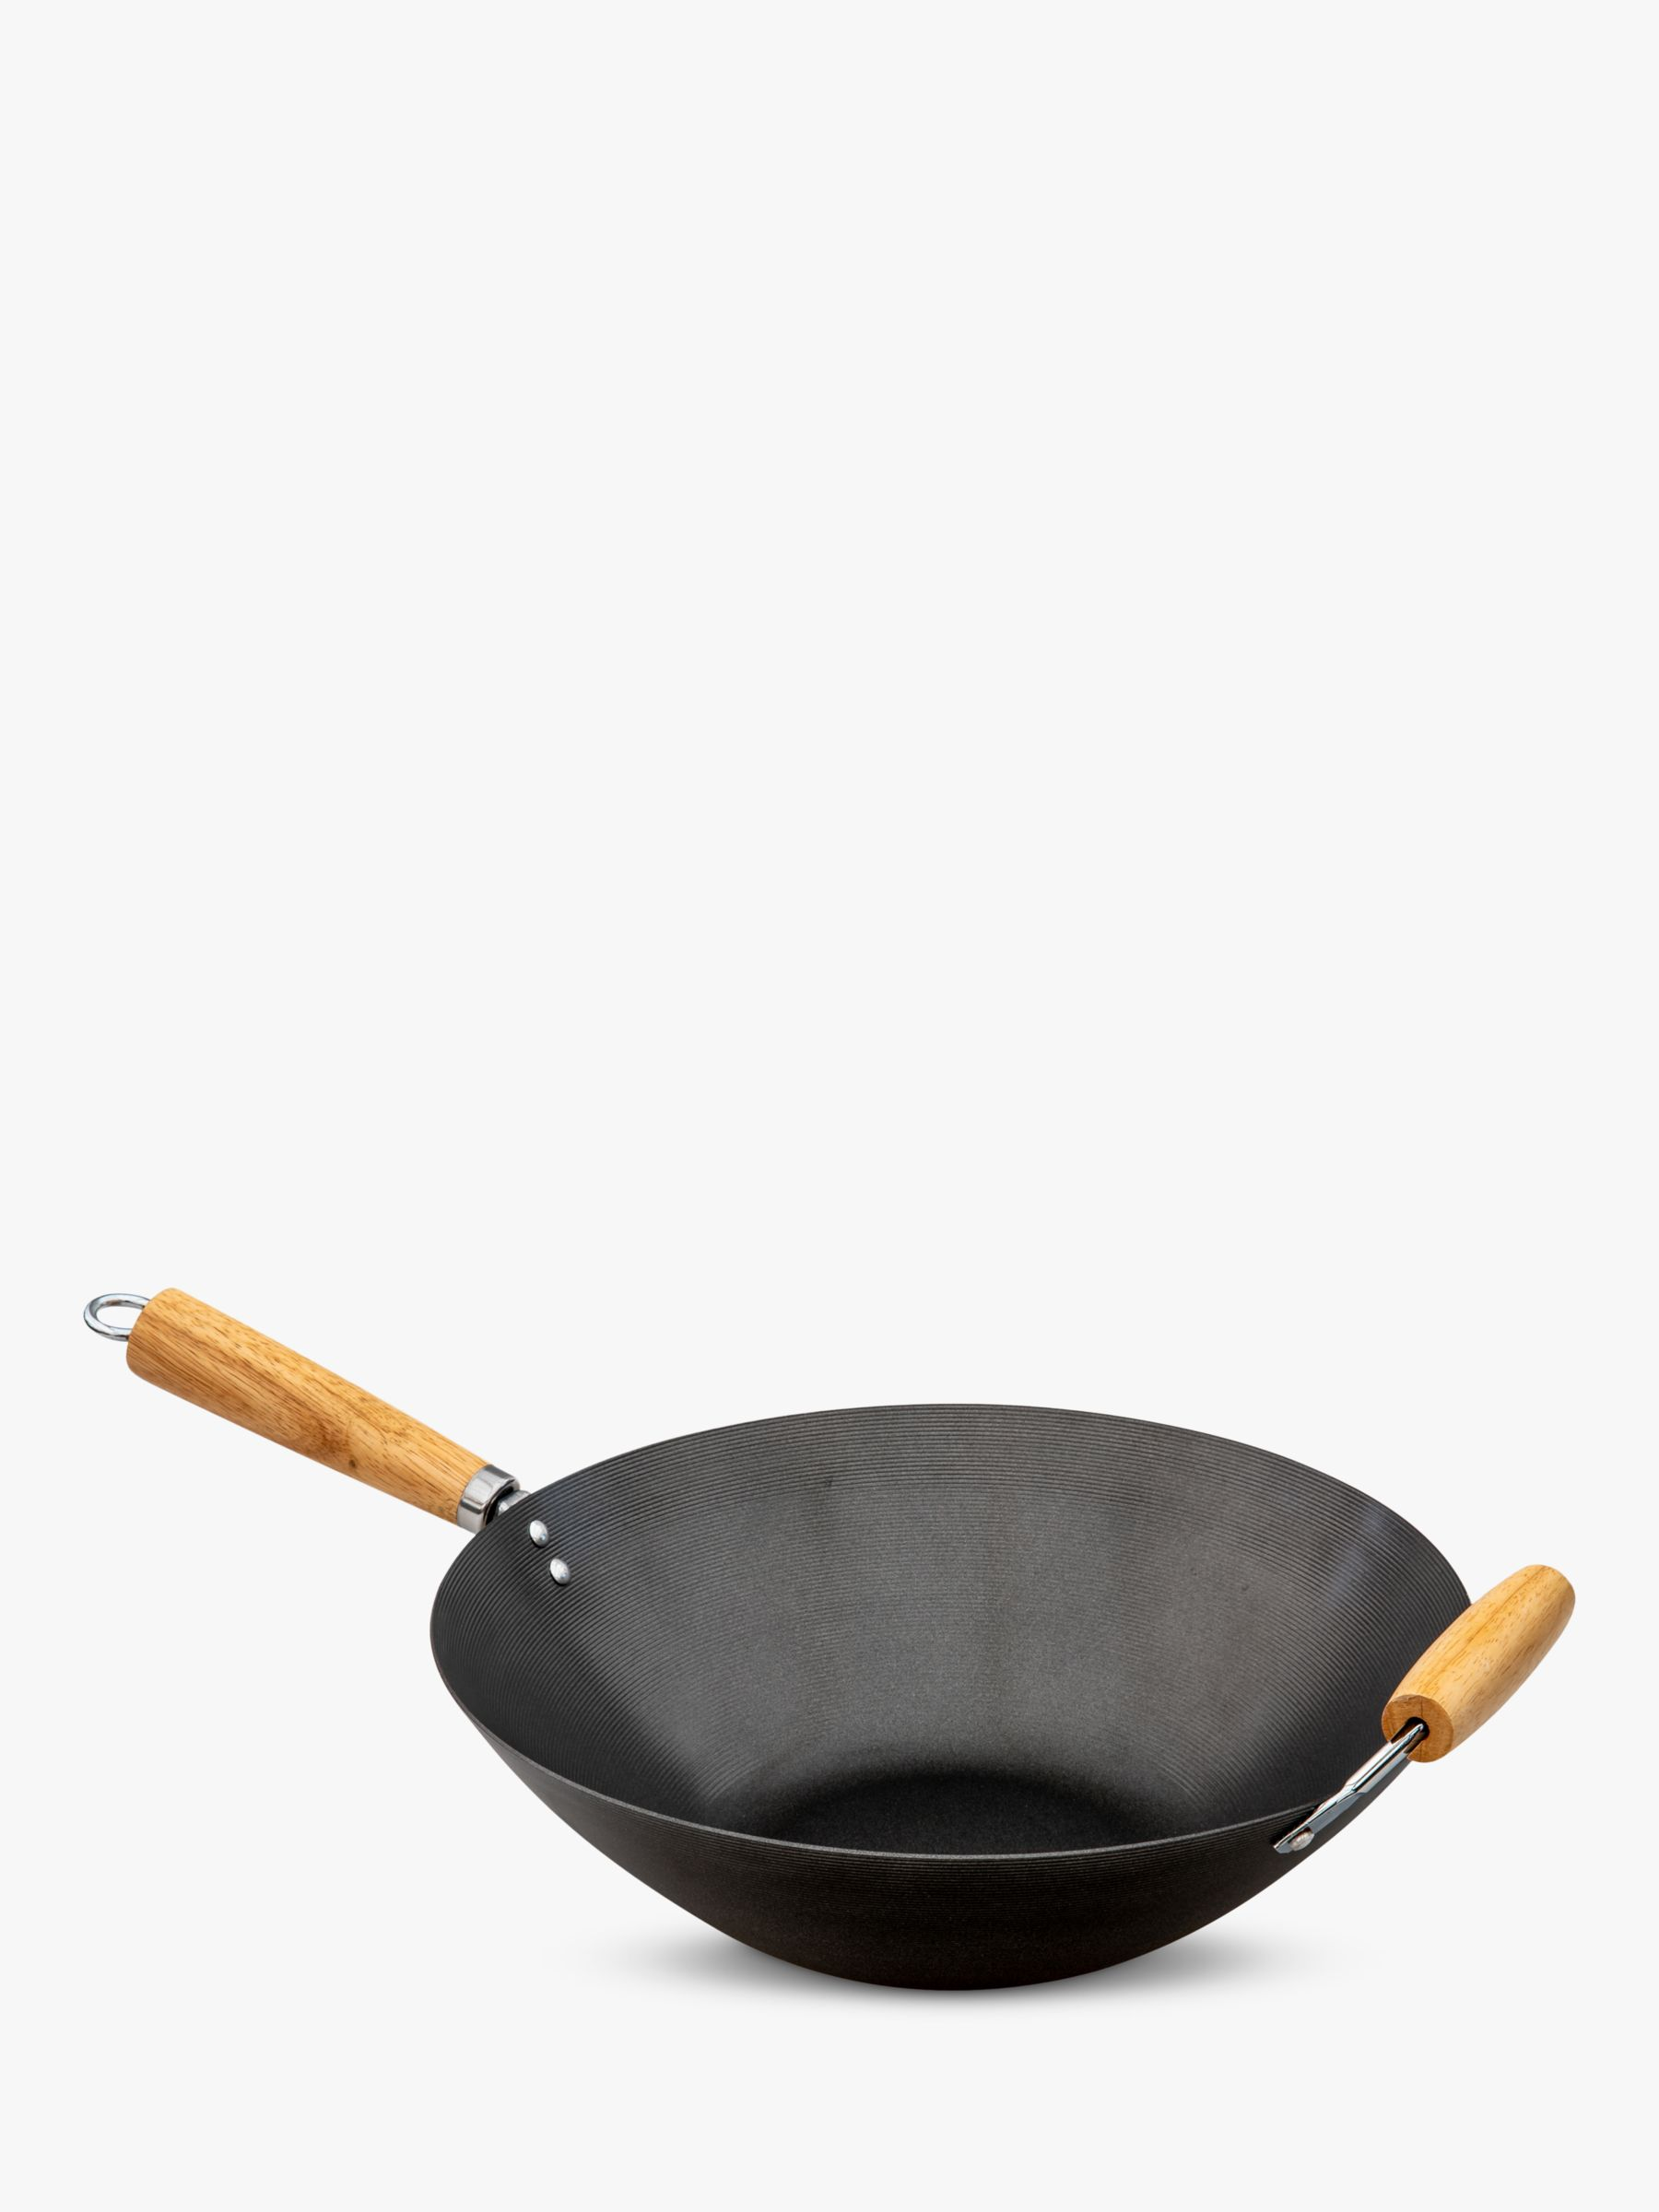 LG Outdoor GrillStream Gourmet BBQ Carbon Steel Non-Stick Wok with Bamboo Handles